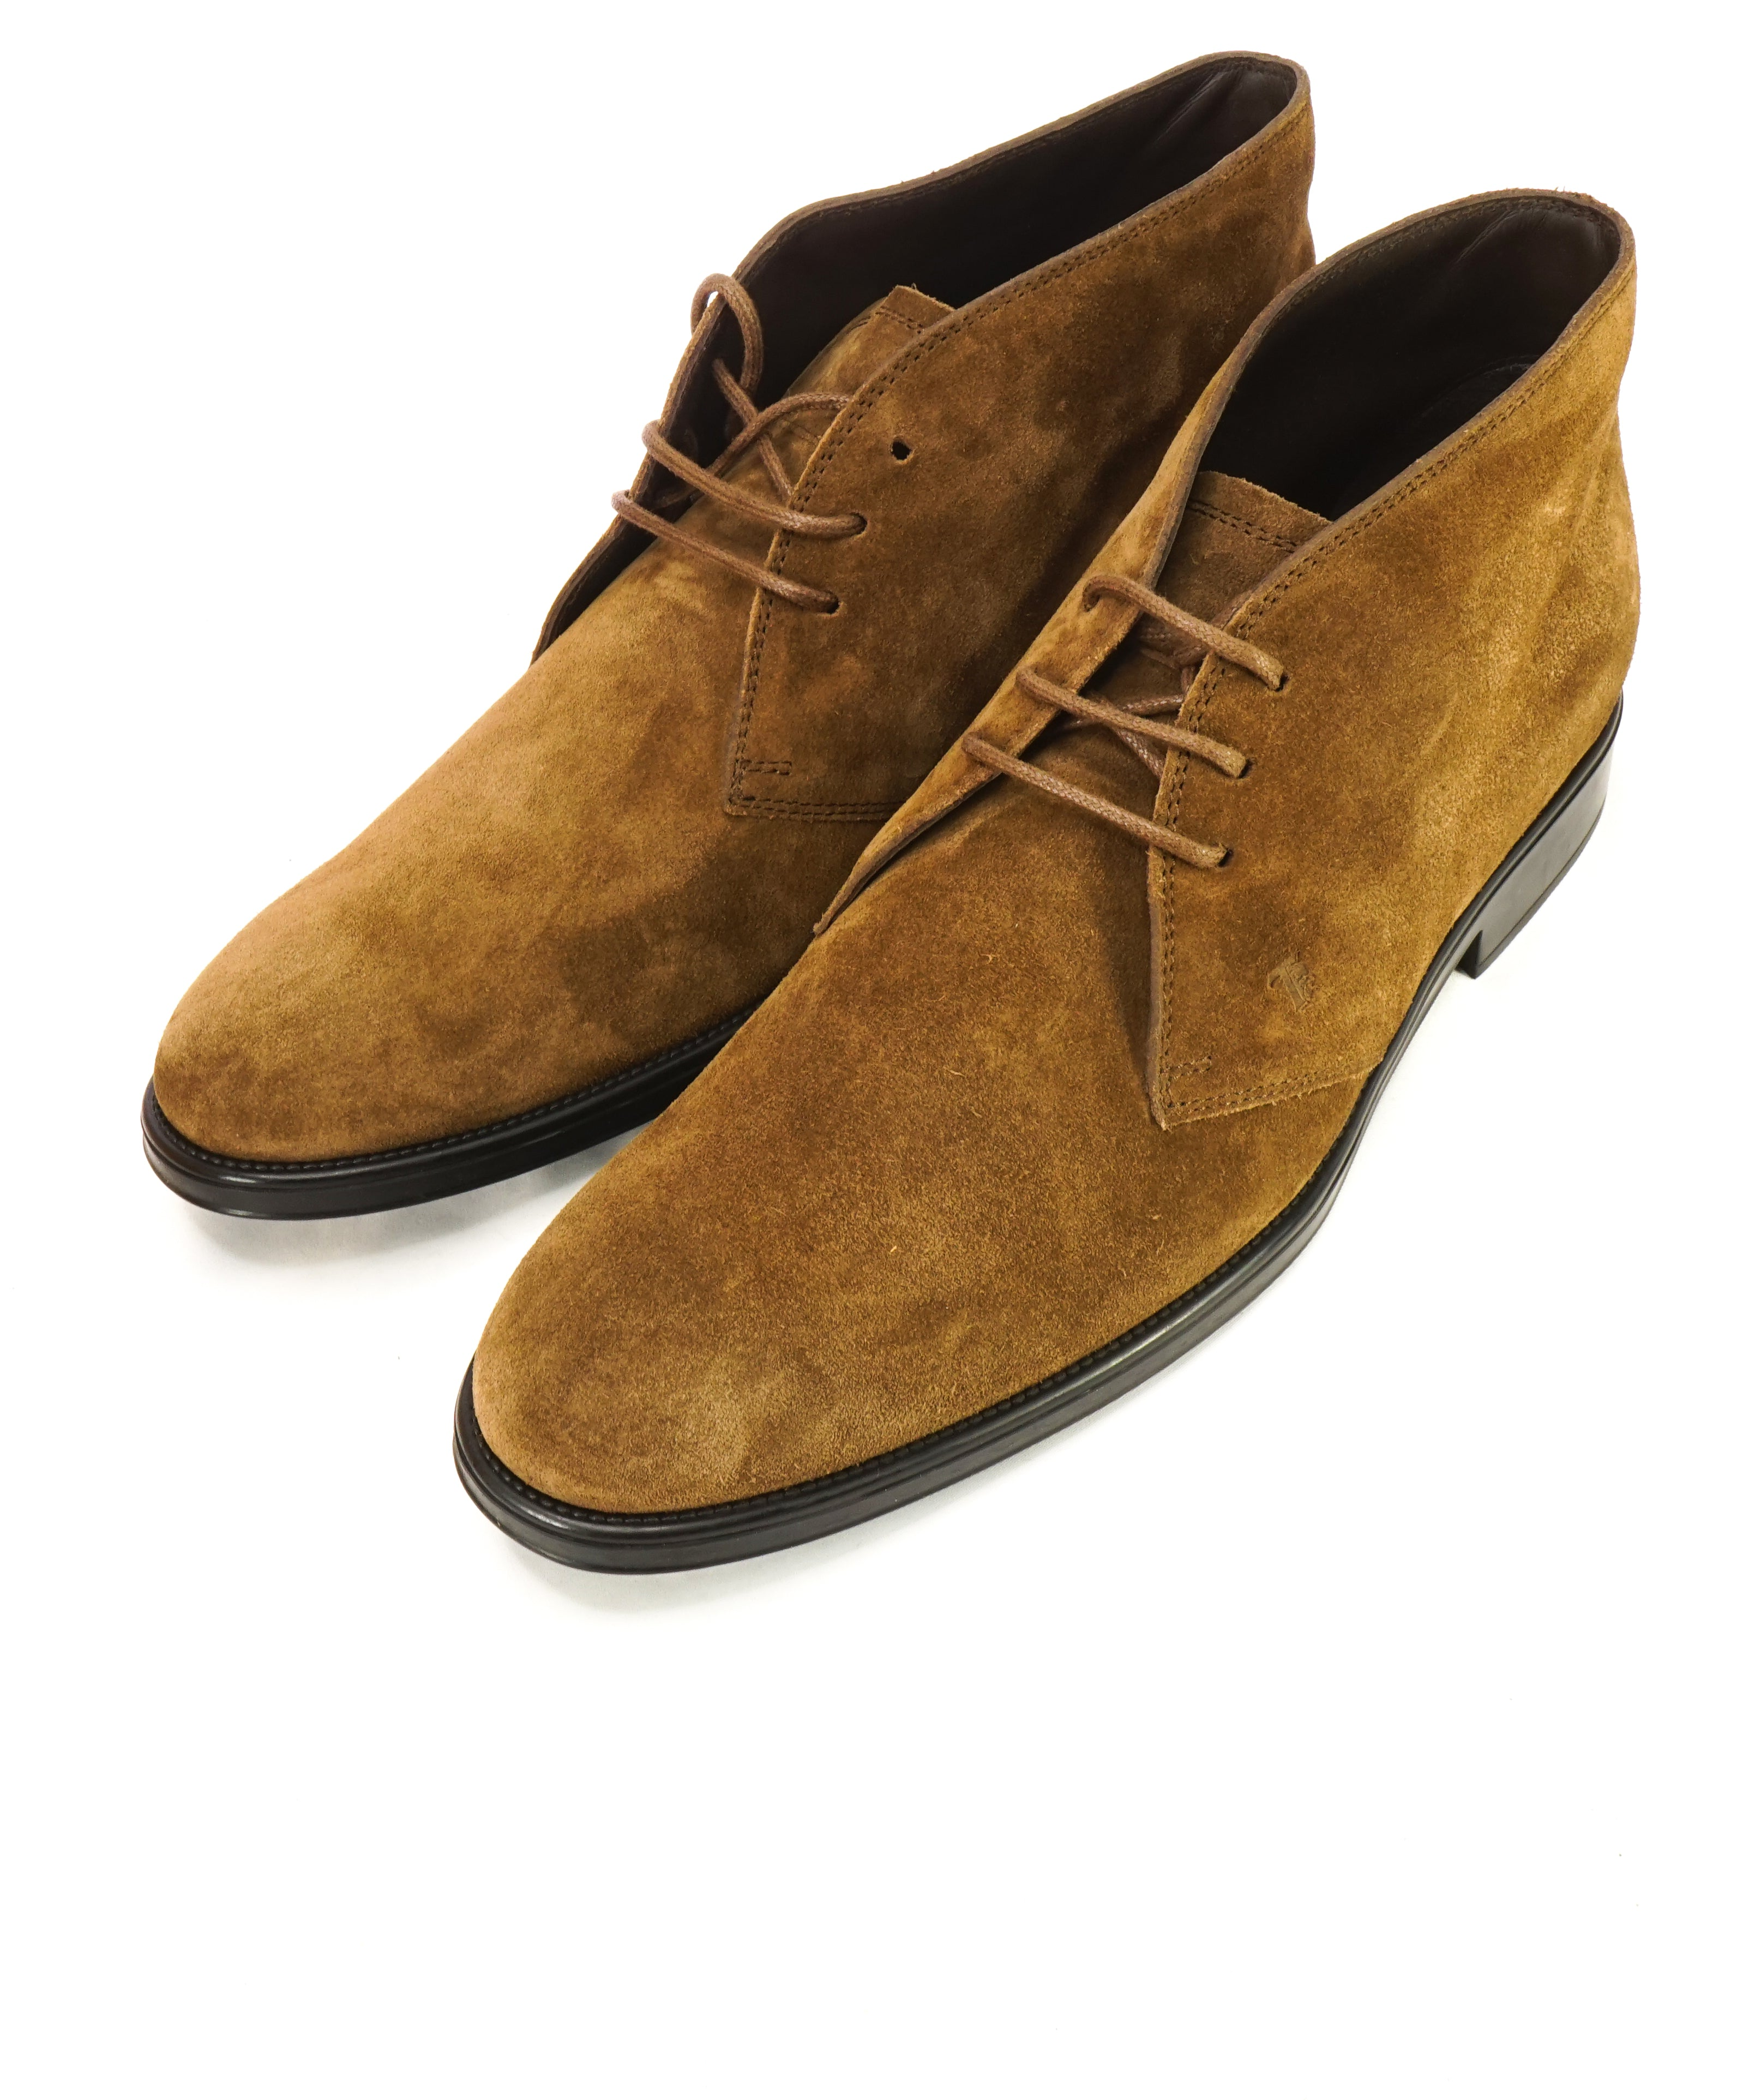 TOD'S - Brown Snuff Suede Logo Chukka Boot With Logo - 12